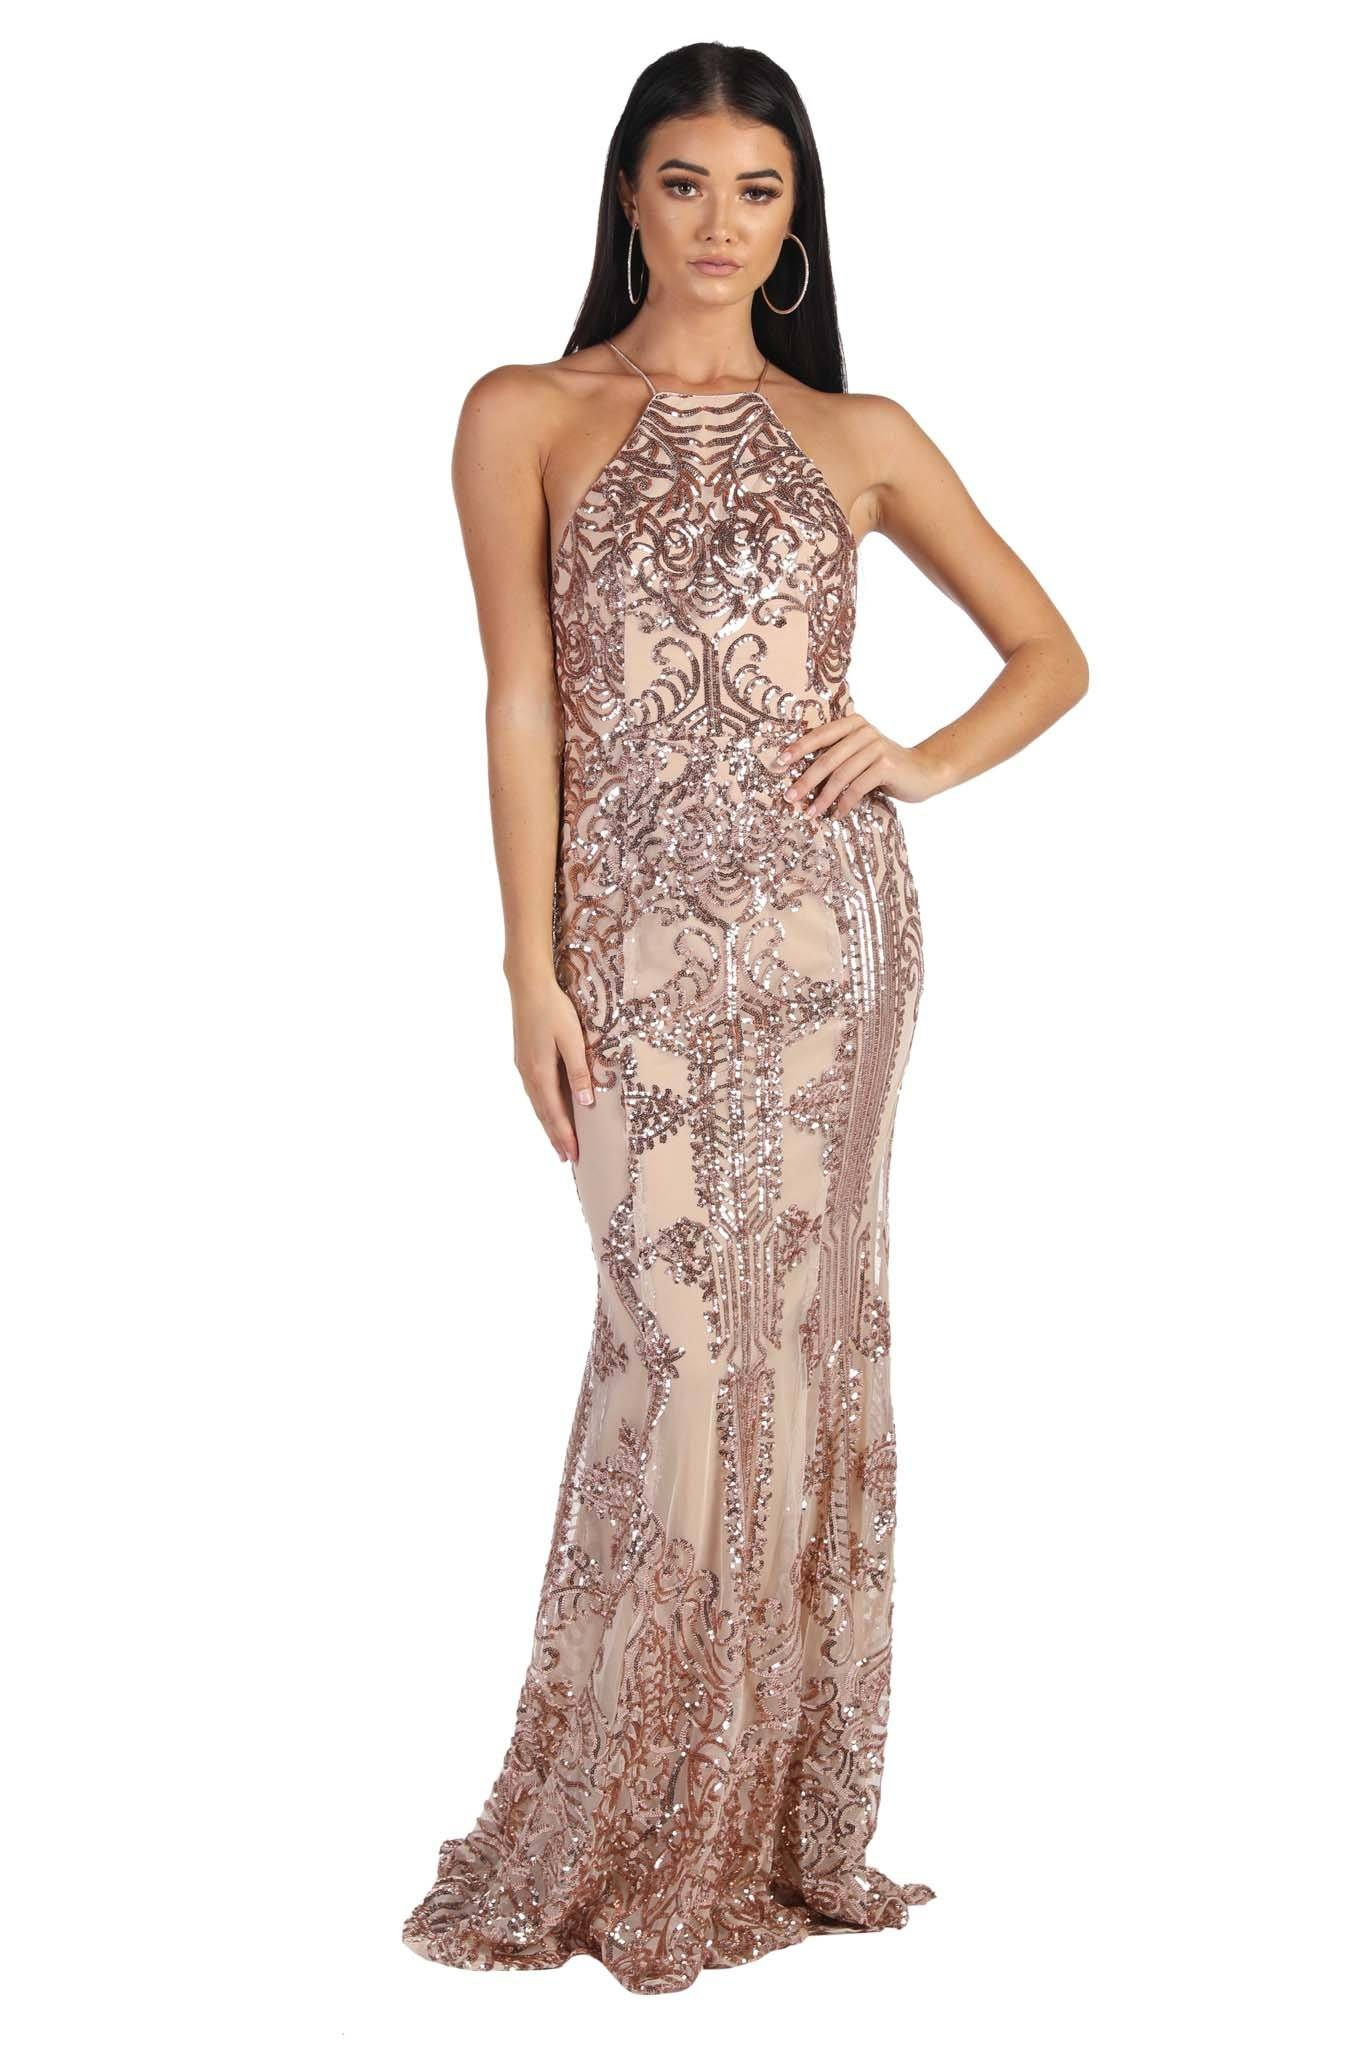 Rose Gold Maxi-Length Sequin Gown with Damask Pattern Sequins, High Racer Neckline, Strappy Lace Up Back